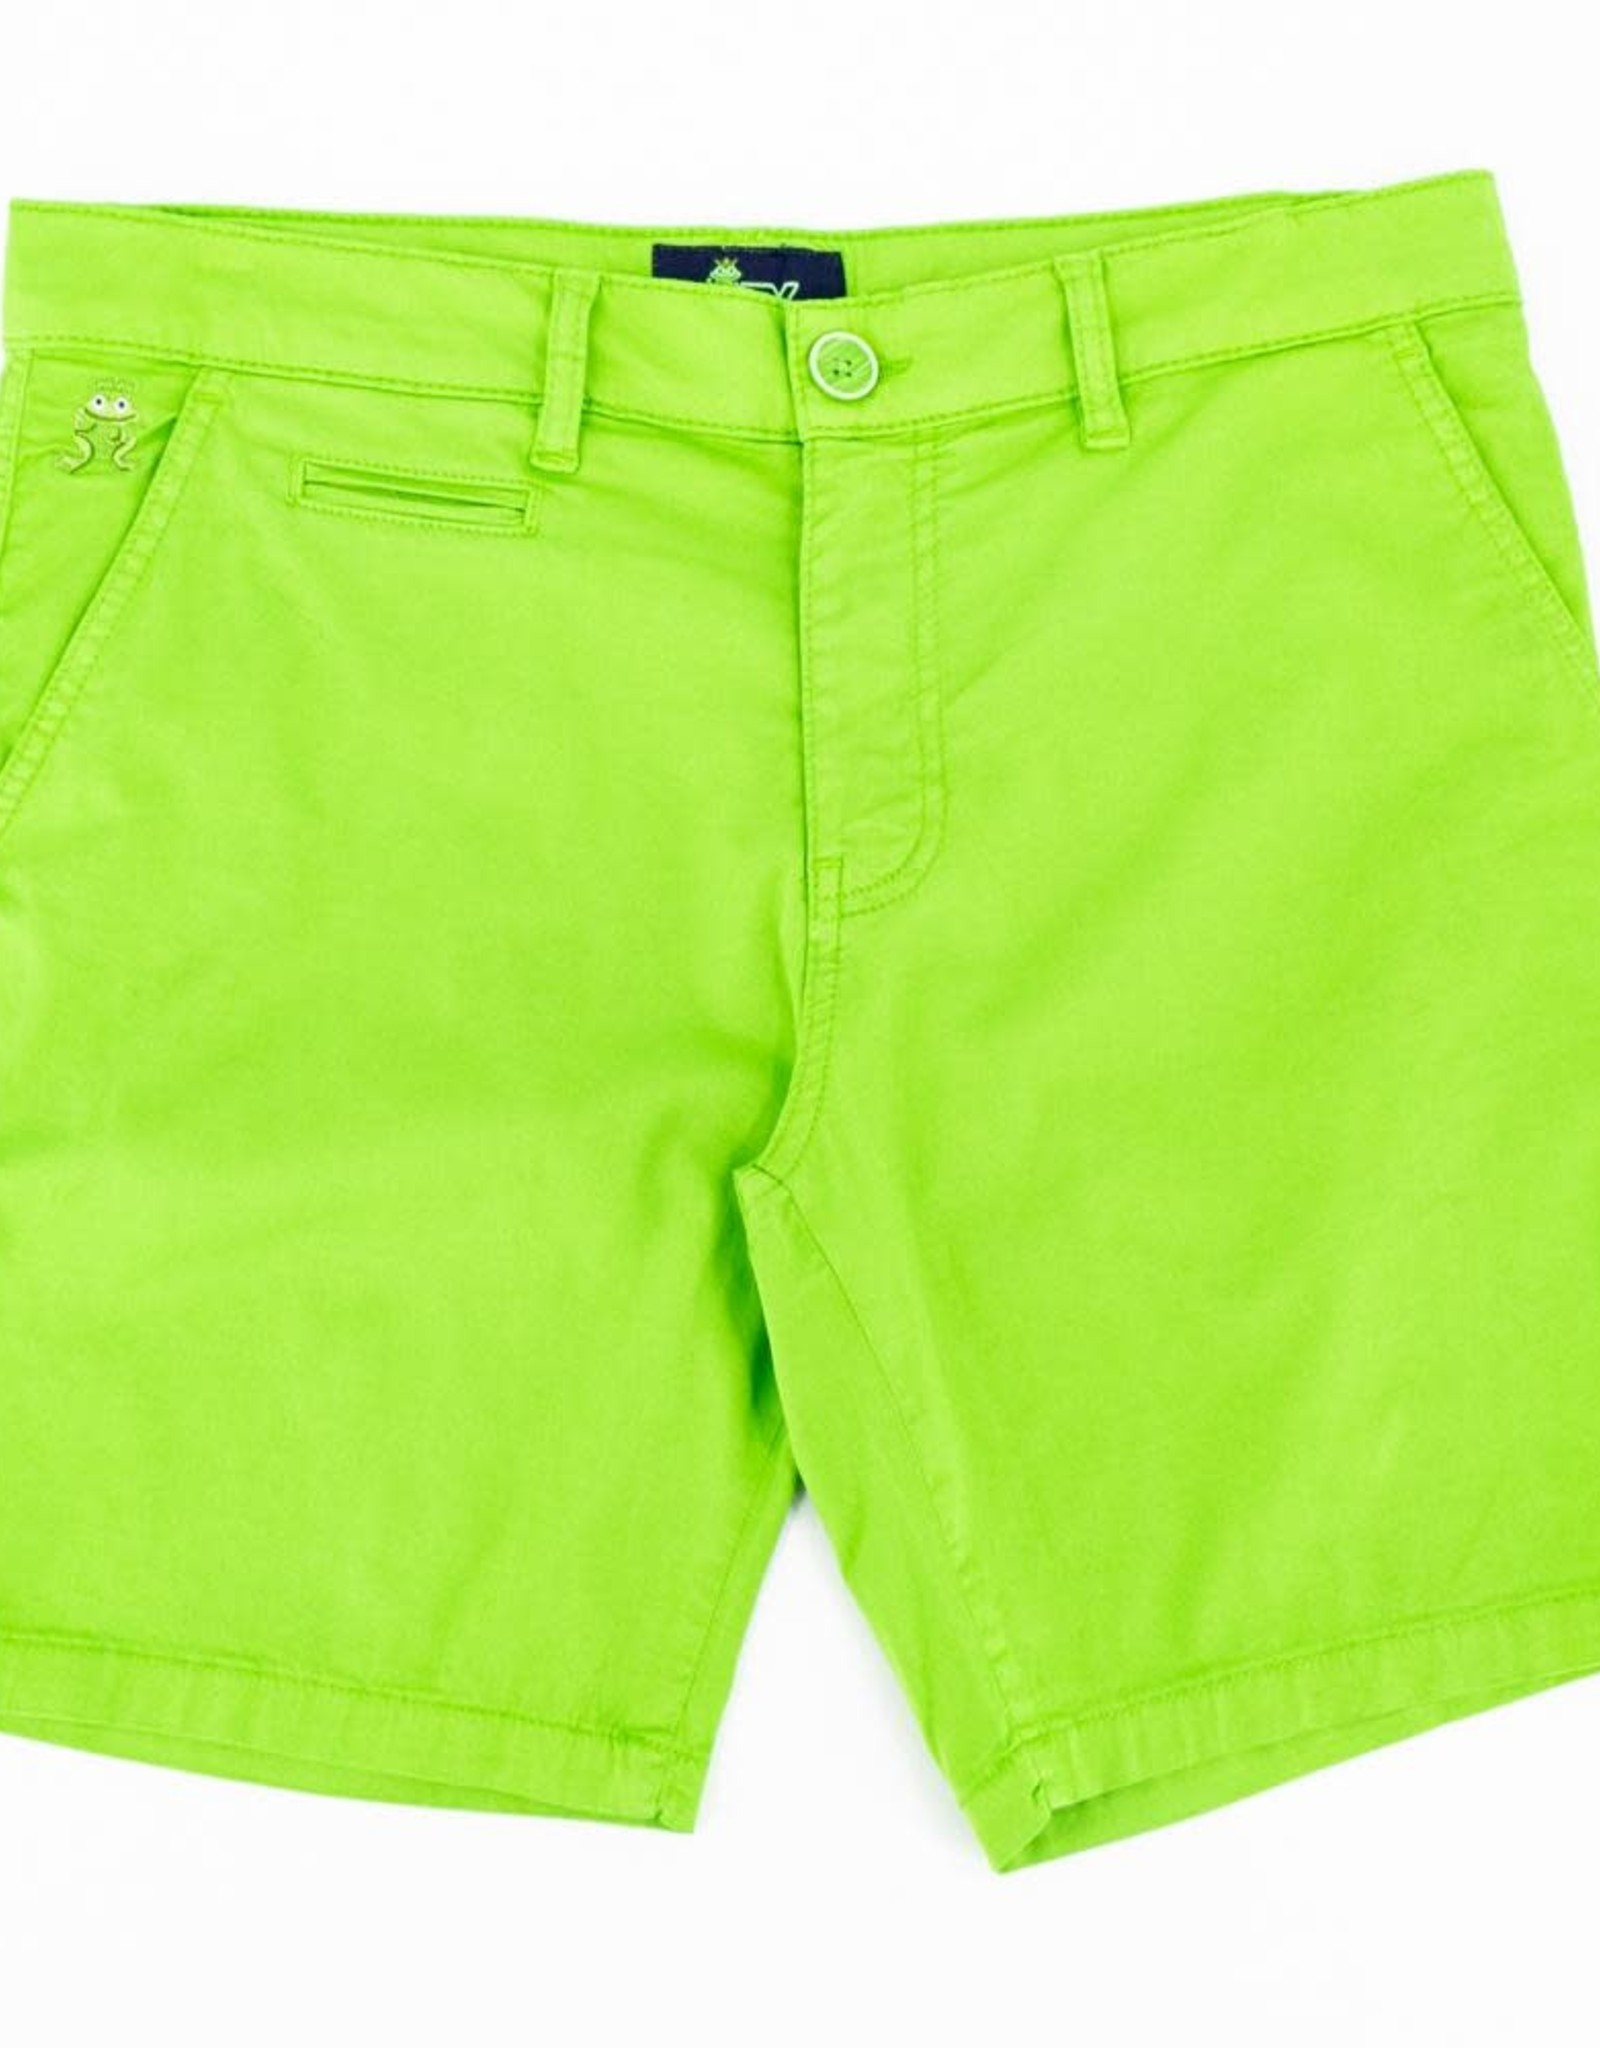 Eight X Frog Chino Shorts (2 colors)